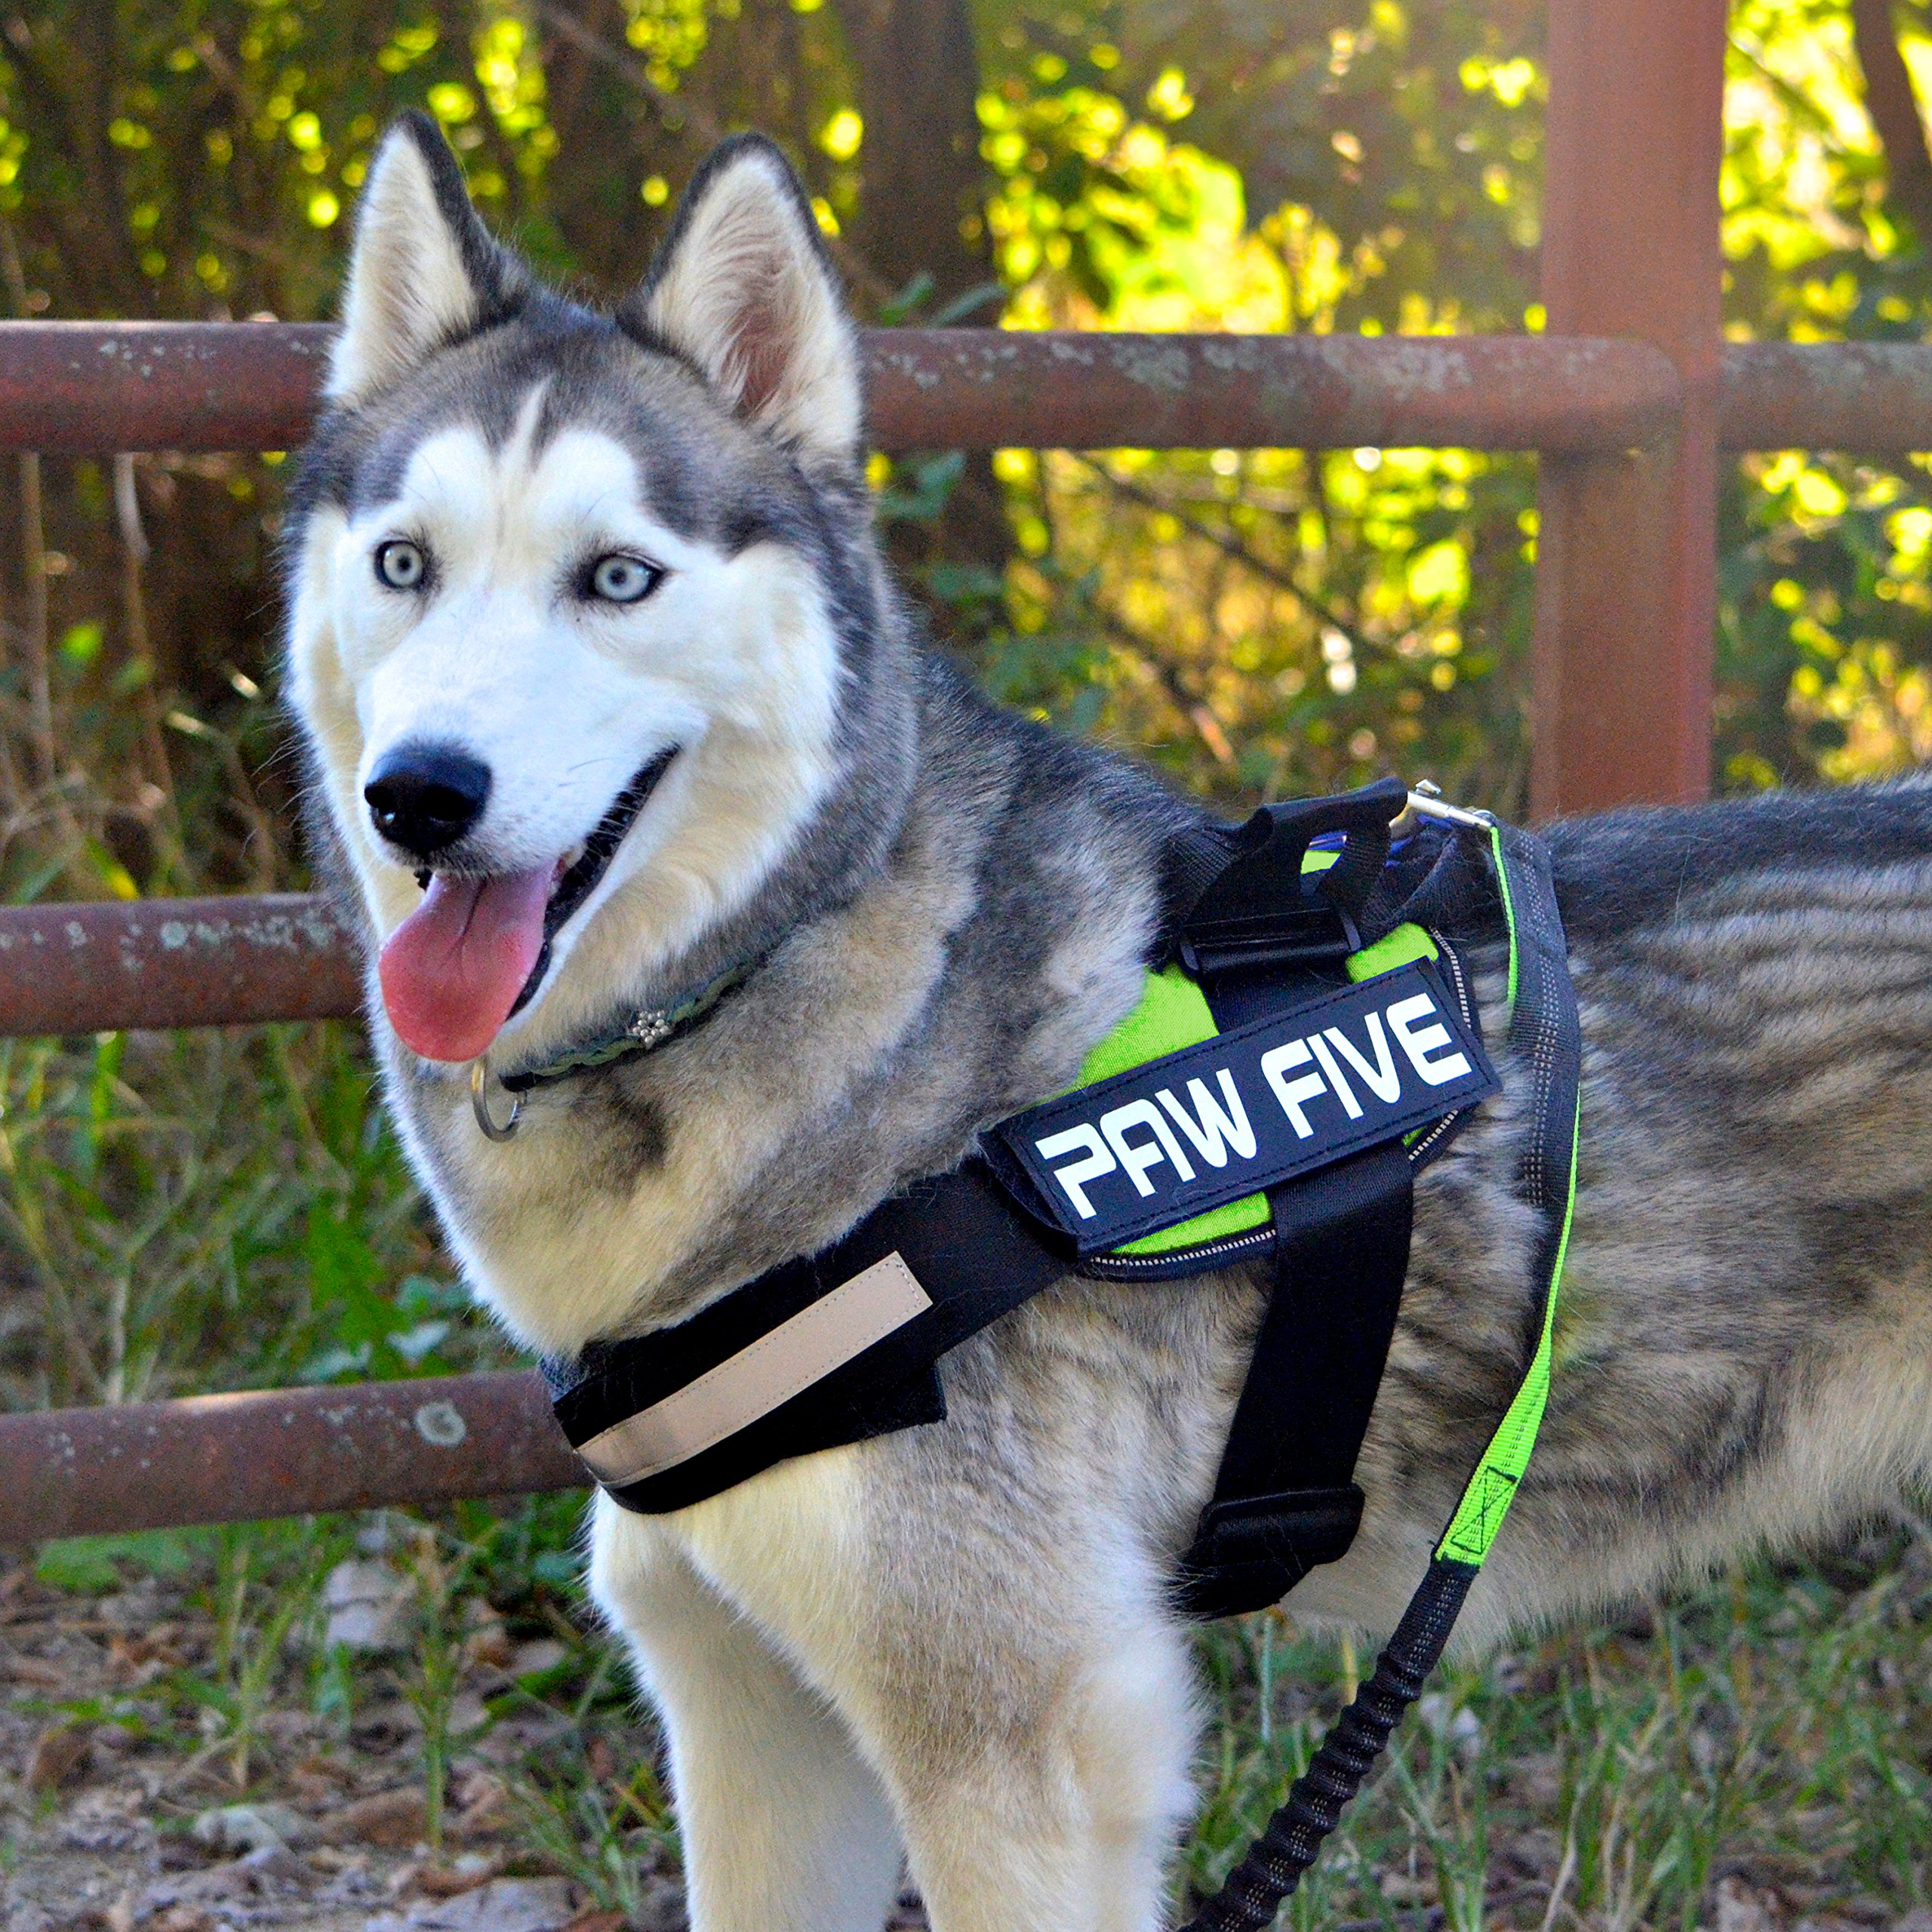 Paw Five CORE-1 Reflective Dog Harness with Built-in Waste Bag Dispenser Adjustable Padded No-Pull Easy Walk Control for Medium and Large Dogs, Check Sizing Chart Before Ordering (Medium, Leaf Green)